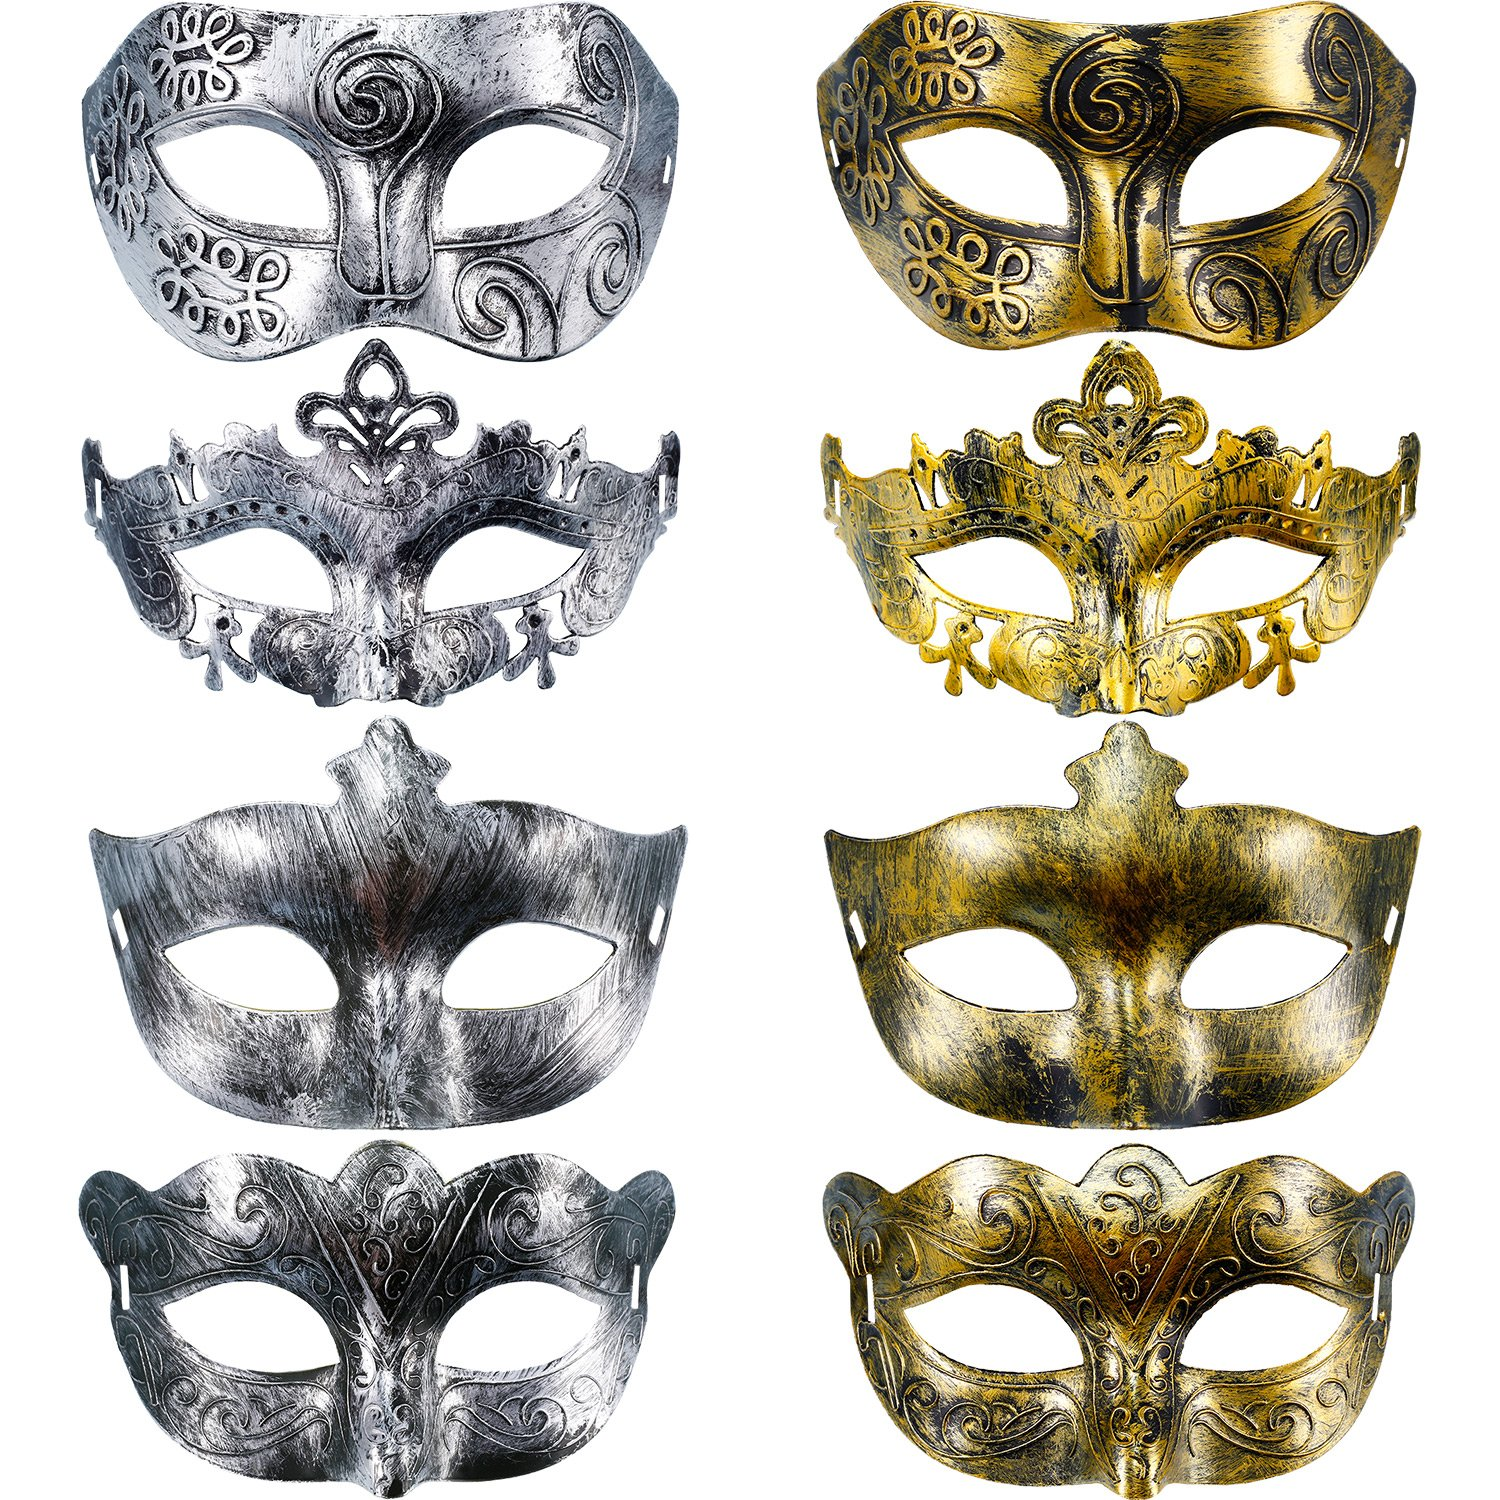 Hestya 8 Pieces Vintage Antique Masks Masquerade Carnival Mask (Gold Silver)